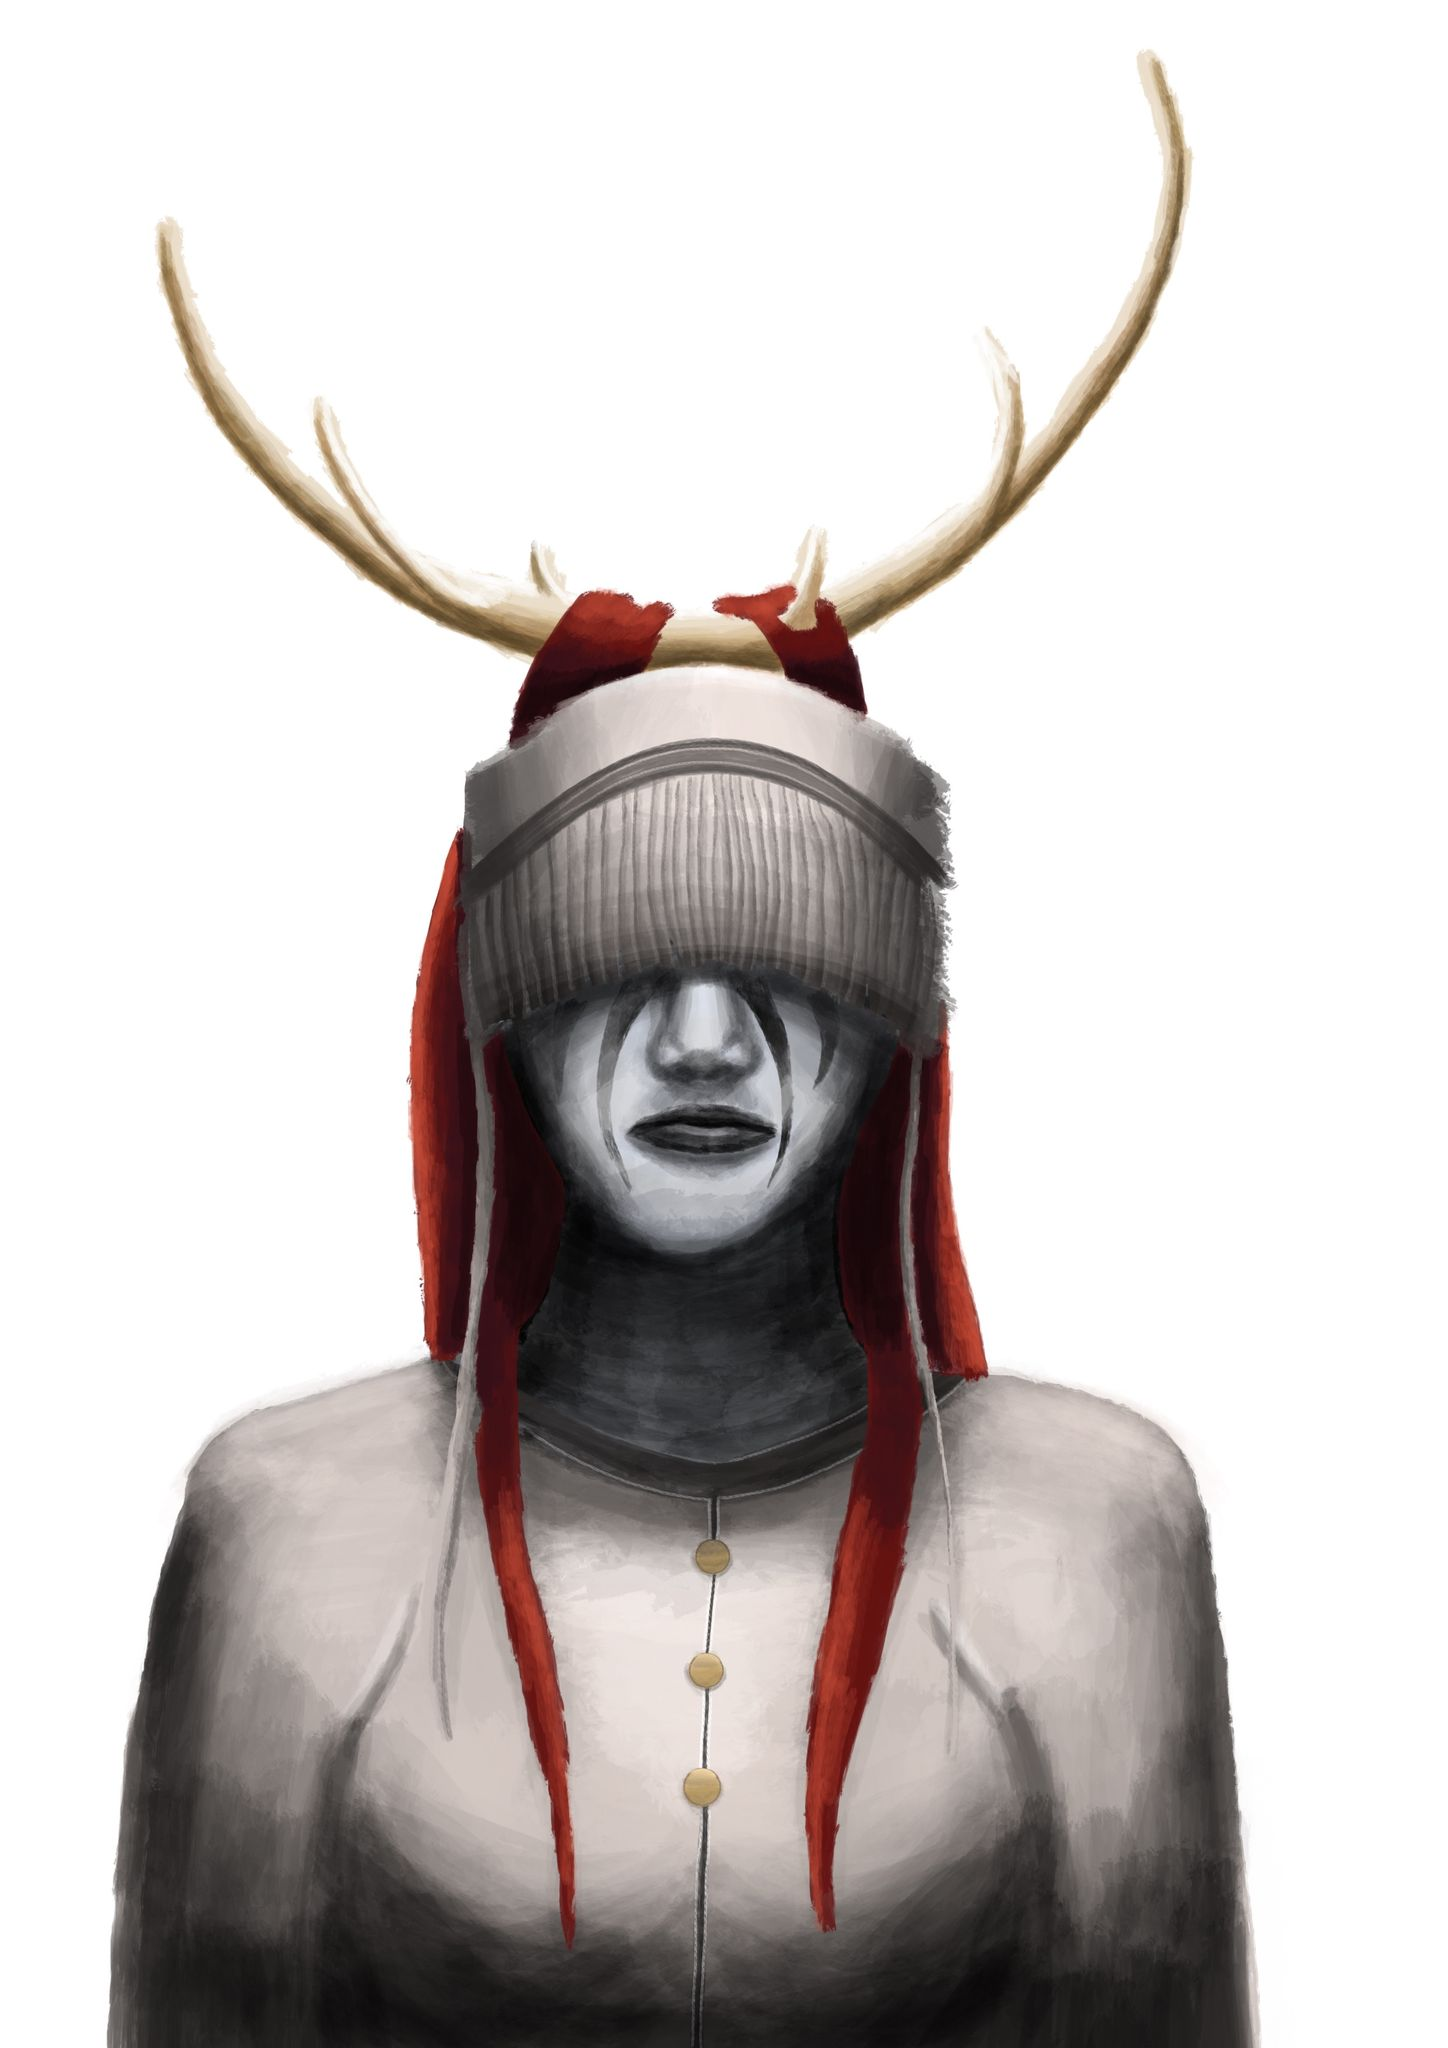 A painting of a woman from the chest up, she has antlers on her head and long red hair, and has headgear that goes over her forehead, with tassles obscuring her eyes.